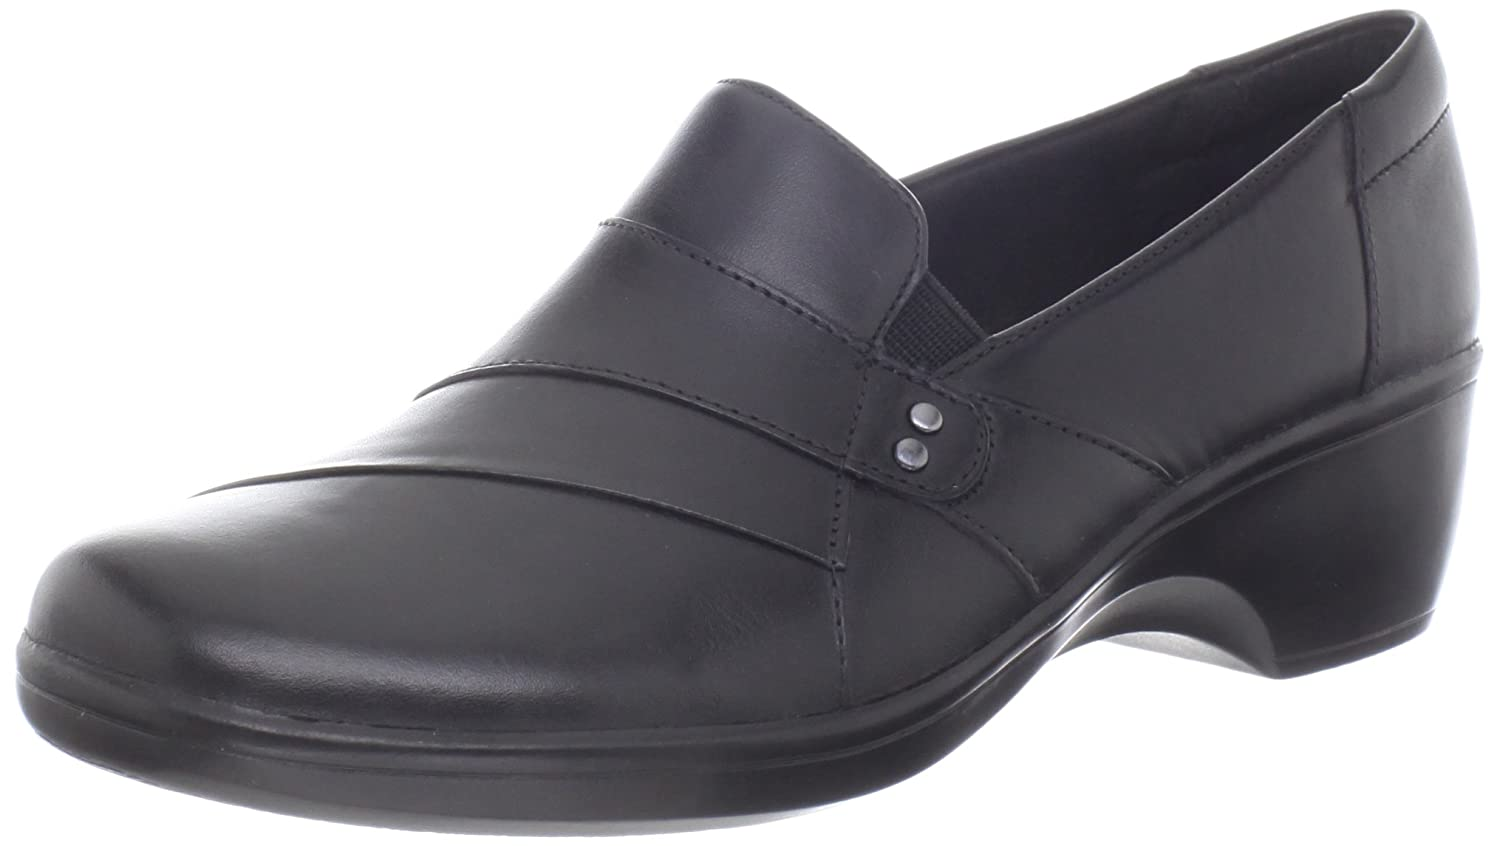 CLARKS Women's May Marigold Slip-On Loafer,